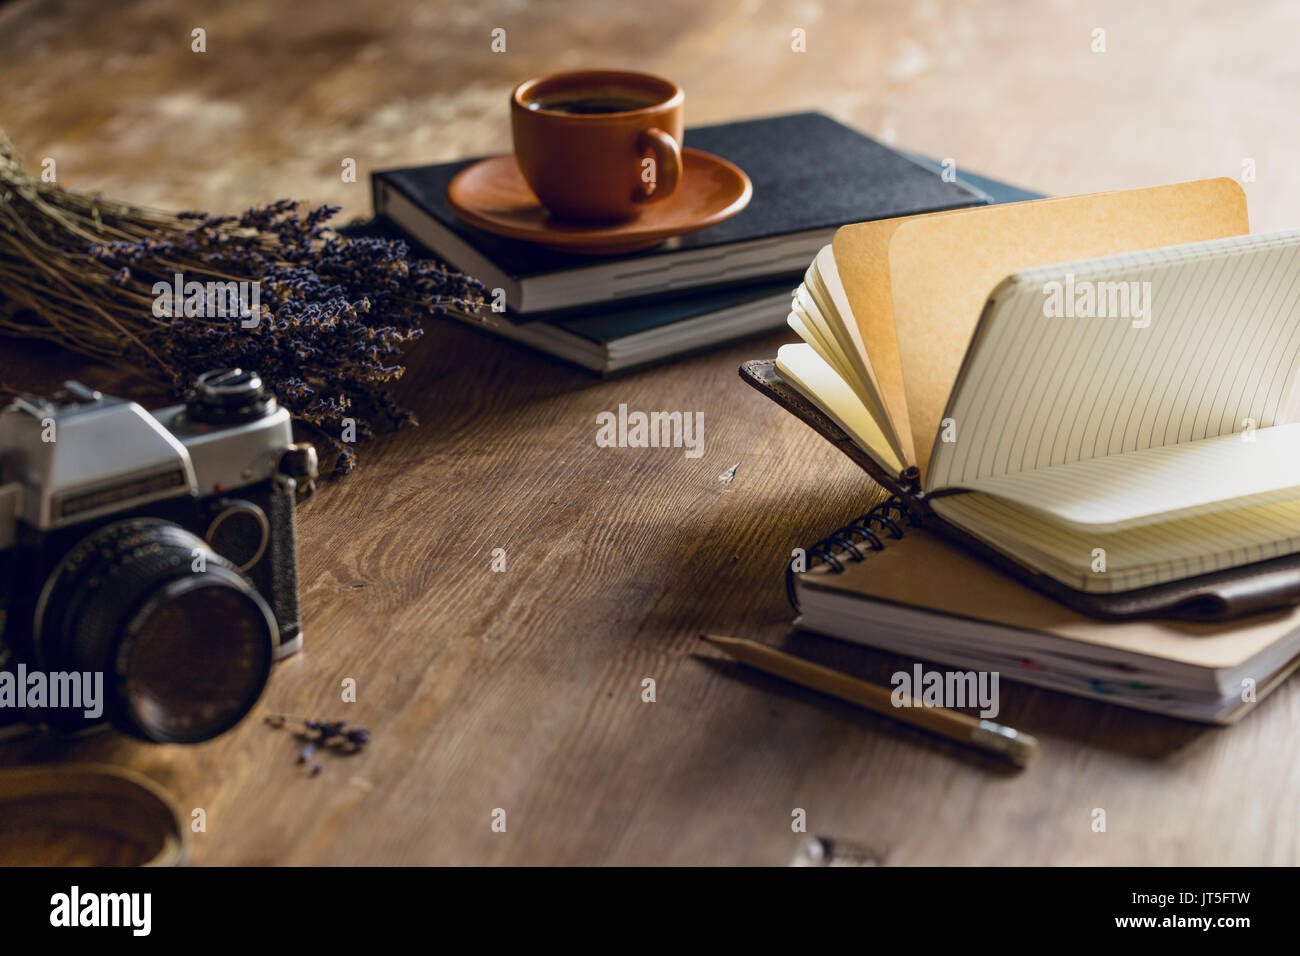 vintage photo camera, and diaries and cup of coffee on wooden tabletop - Stock Image